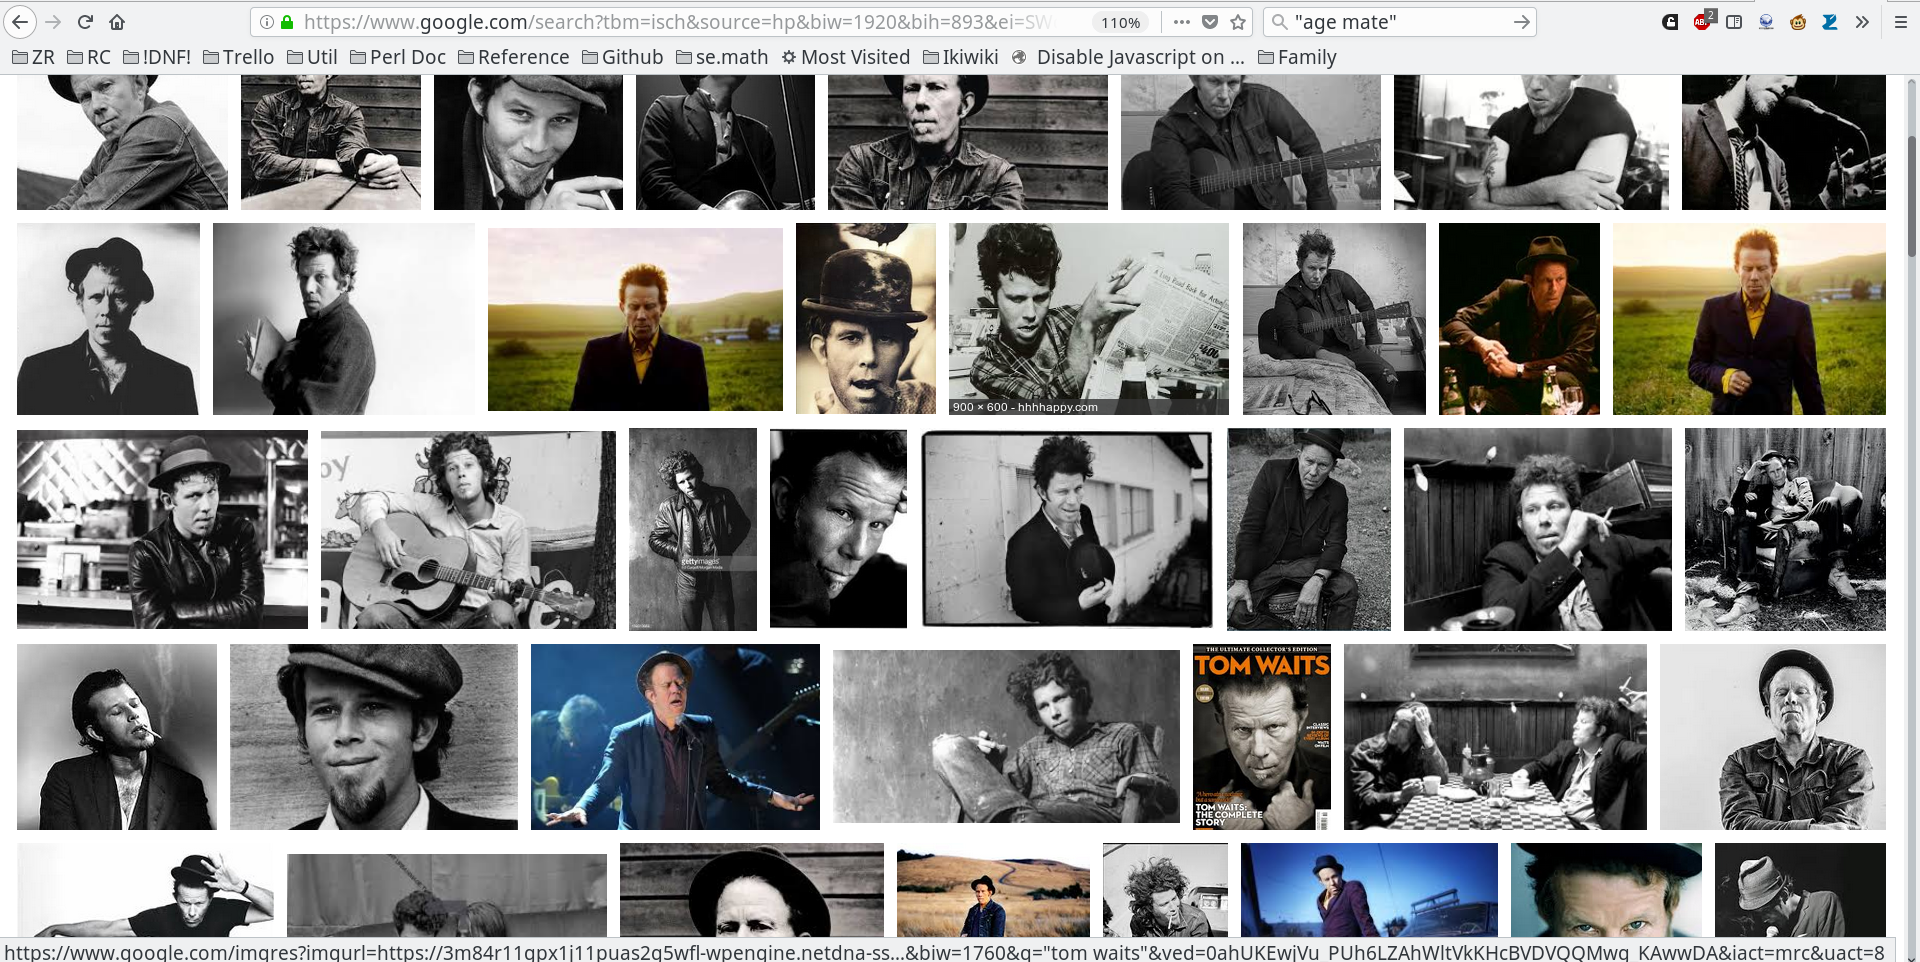 Screenshot of the first page of Google image search for 'Tom Waits'.  Almost all the pictures are black and white photographs; very few are in color.